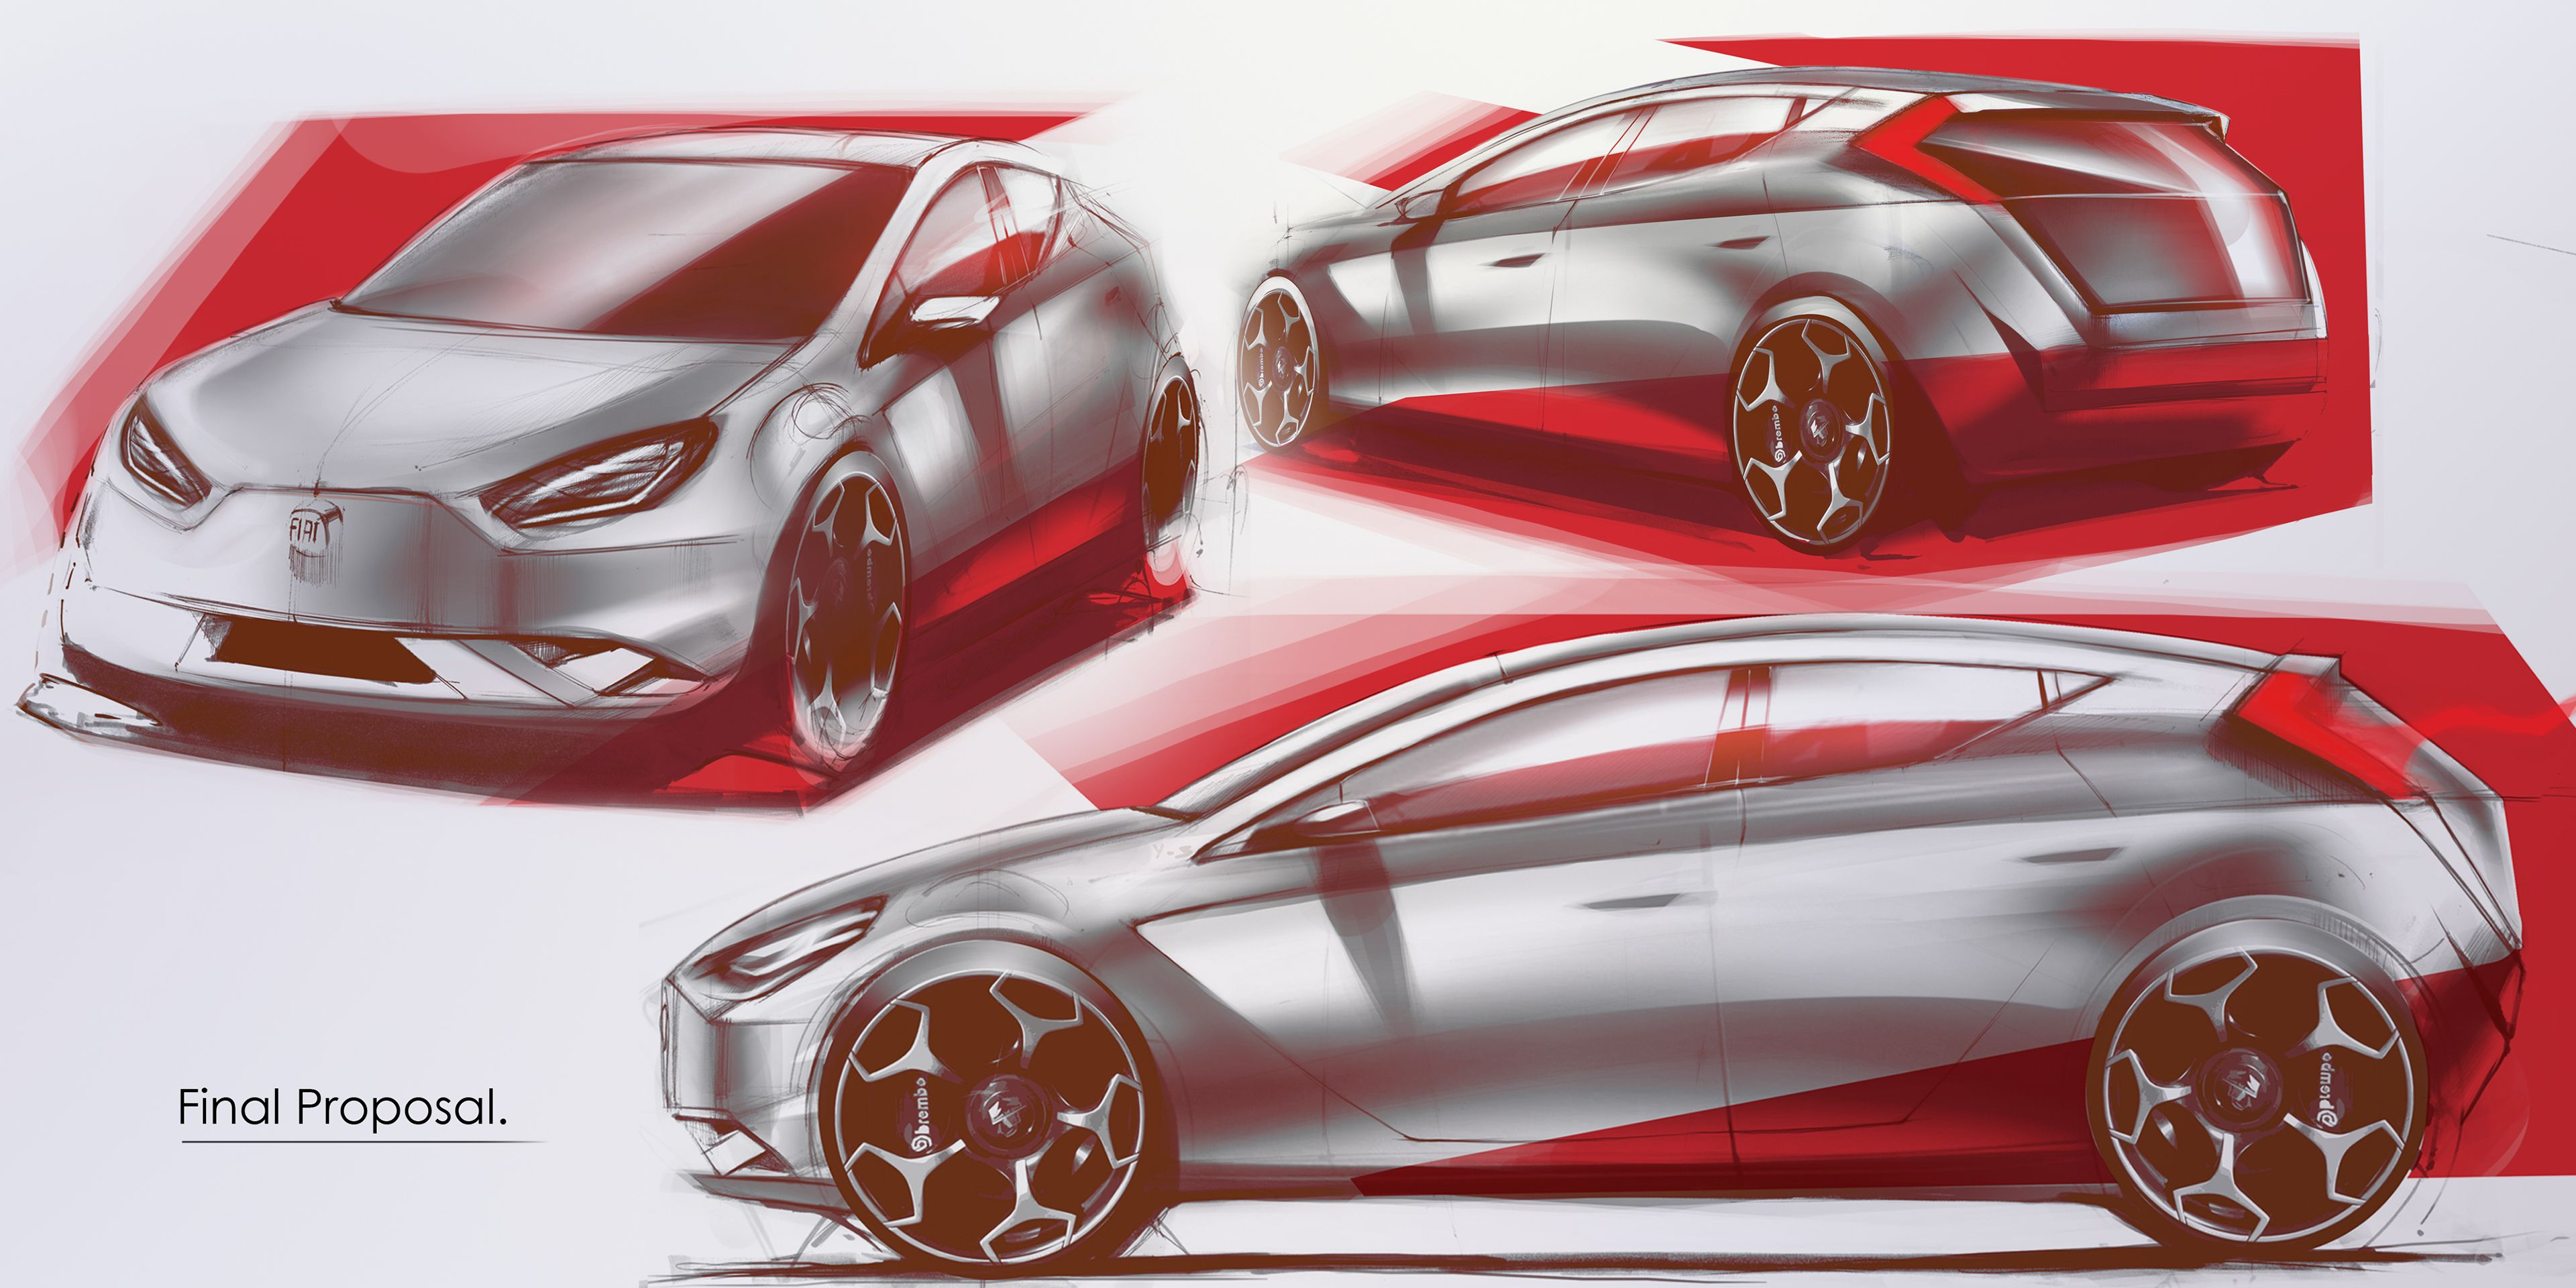 To Redesign Fiat Punto Fo 2020 Fiat Toy Car Redesign